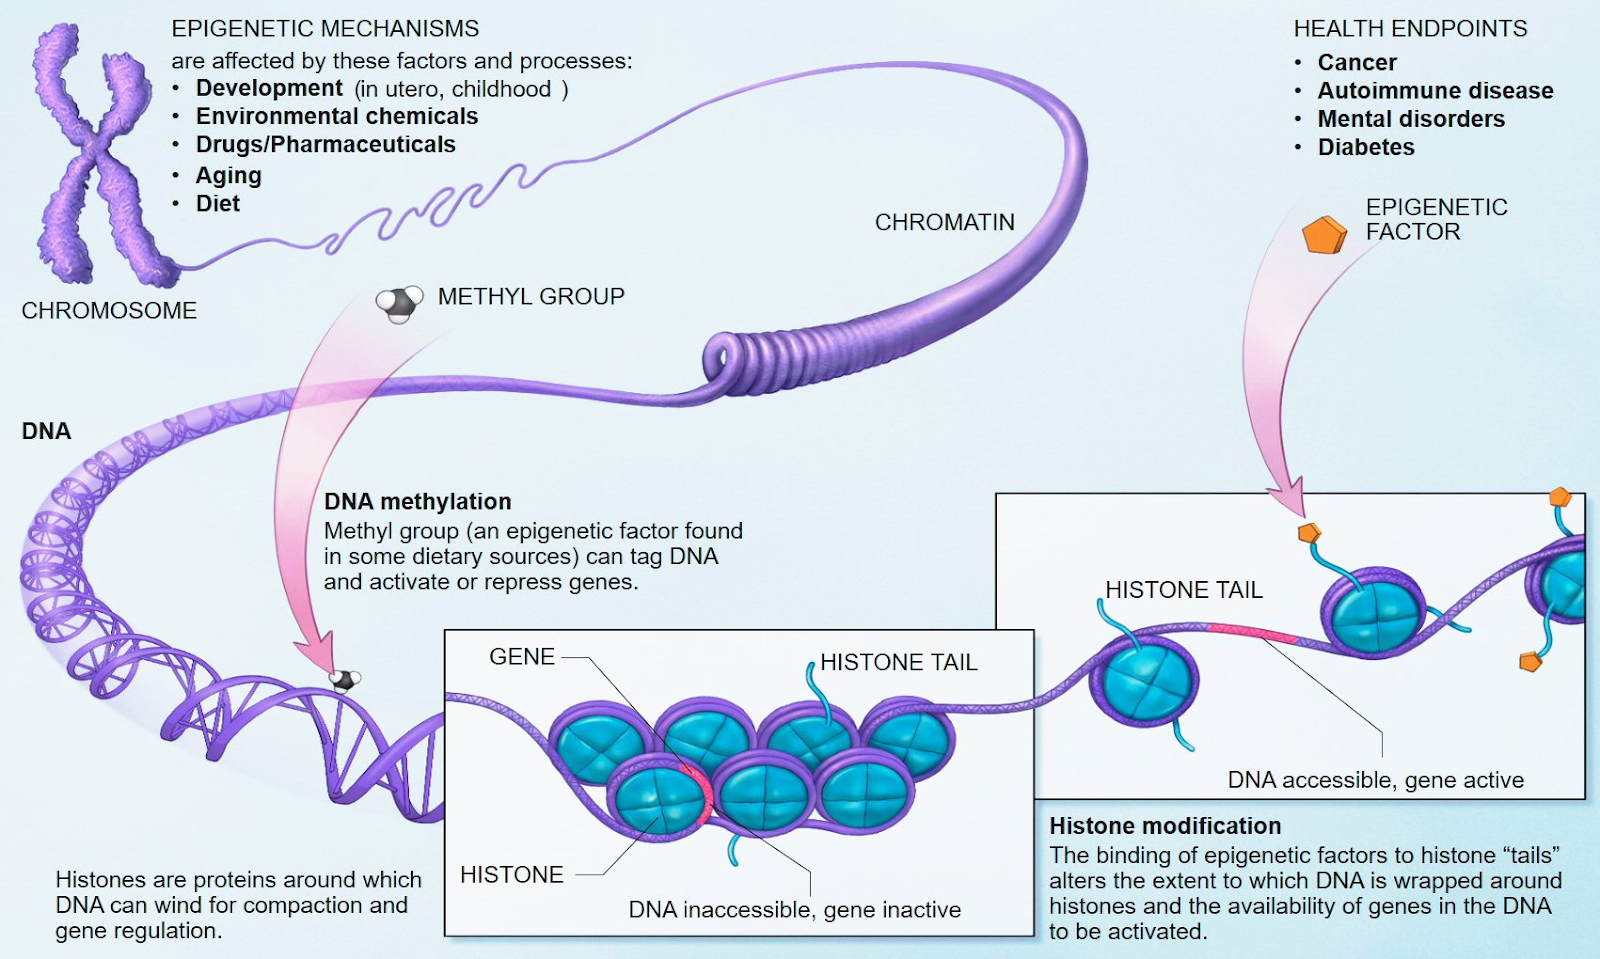 The location of epigenetic changes within chromosomes, depicting direct methylation of DNA or the histones that bind to the DNA sequence.